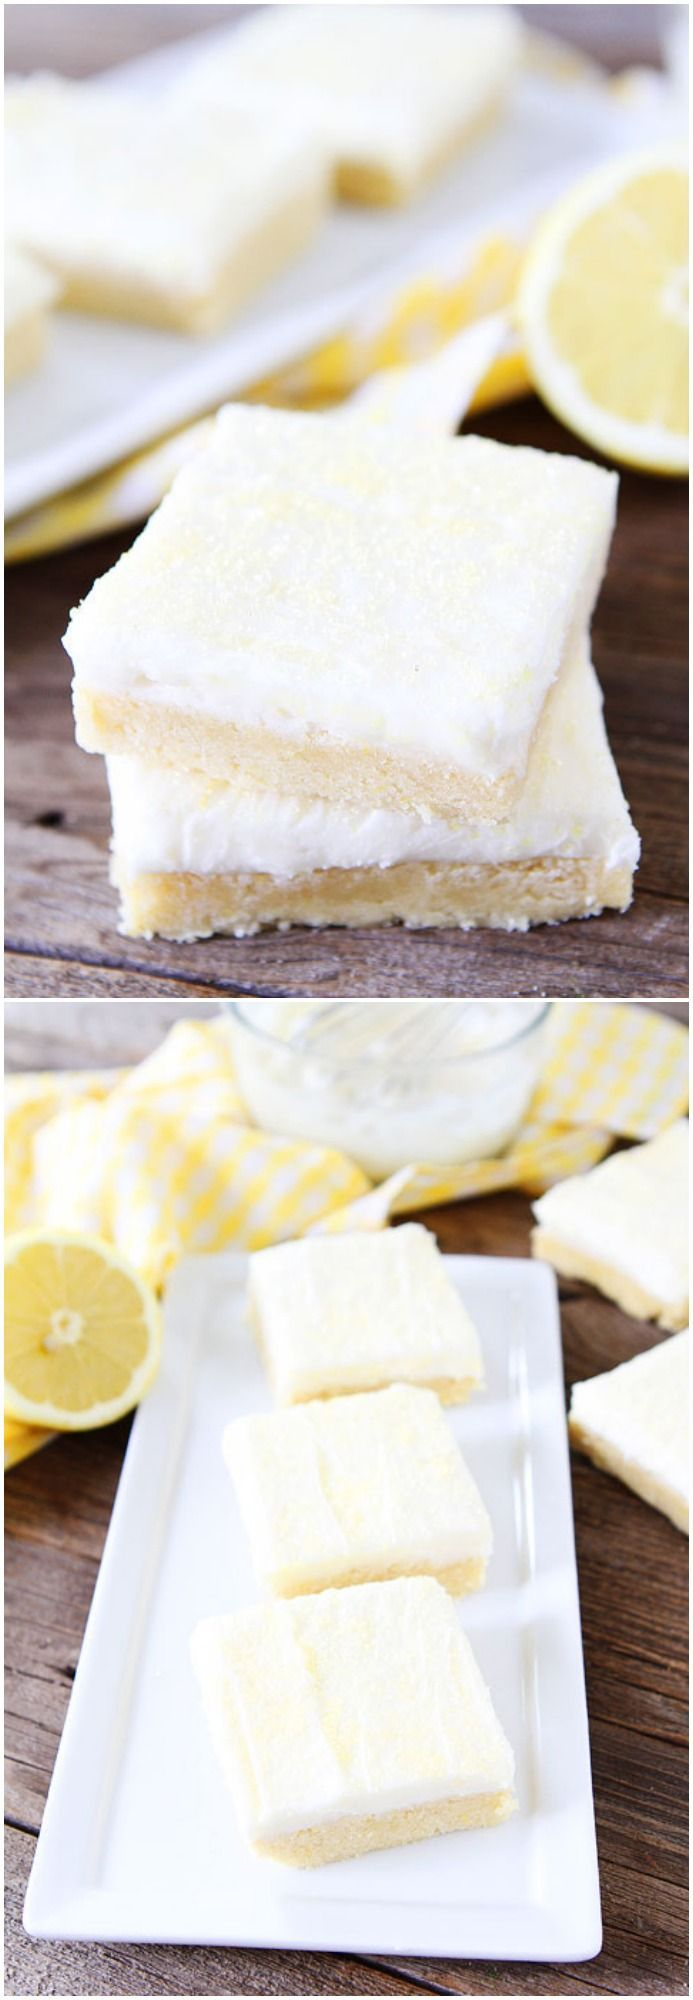 Lemon Sugar Cookie Bars with Lemon Cream Cheese Frosting! The perfect summer dessert! Gotta make these!!! :)